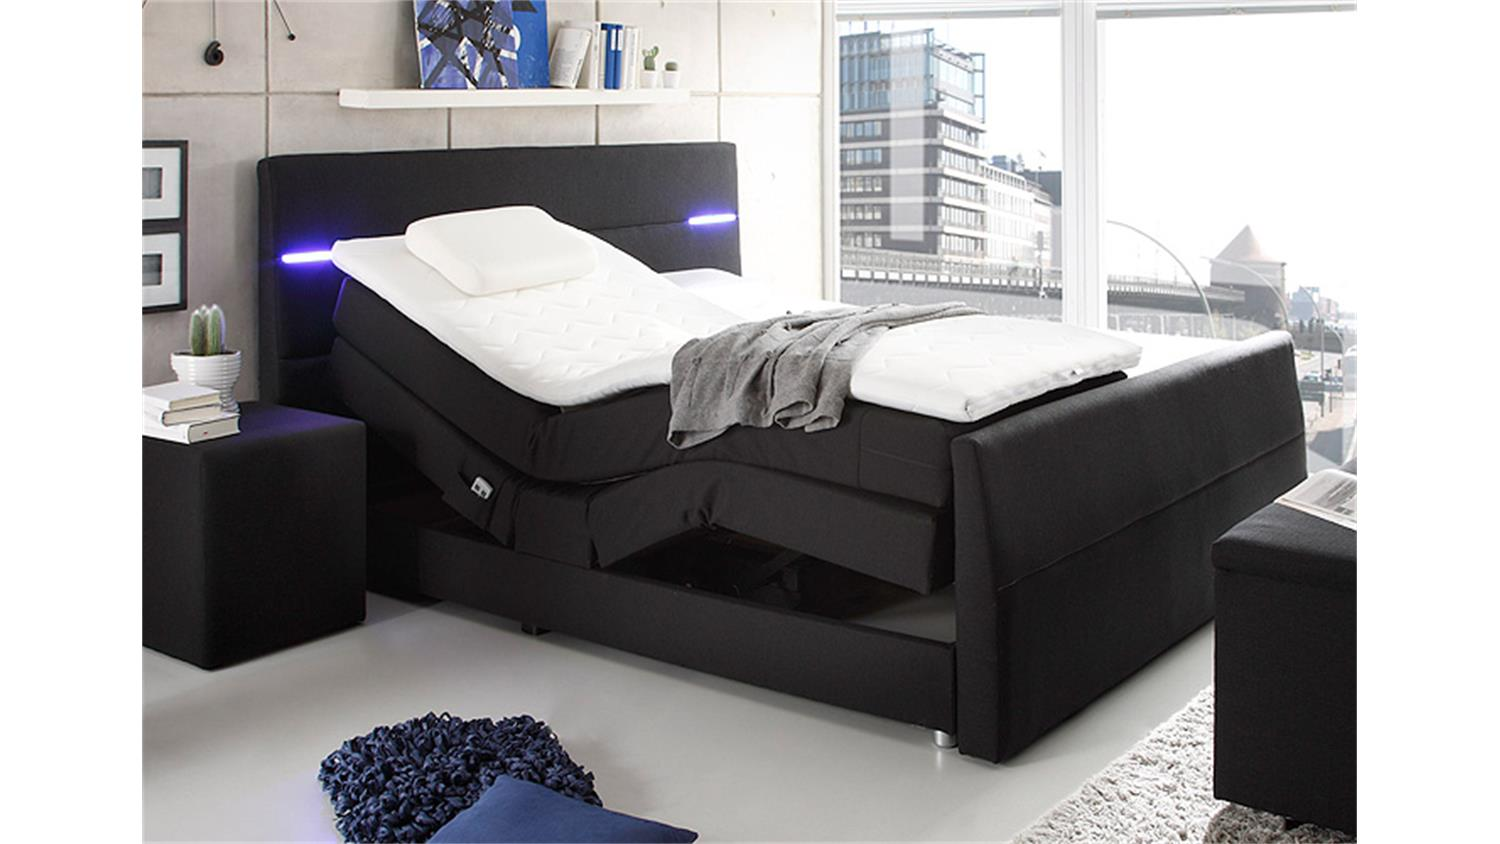 2x nachttisch set led 70cm hoch f r boxspringbett wei. Black Bedroom Furniture Sets. Home Design Ideas